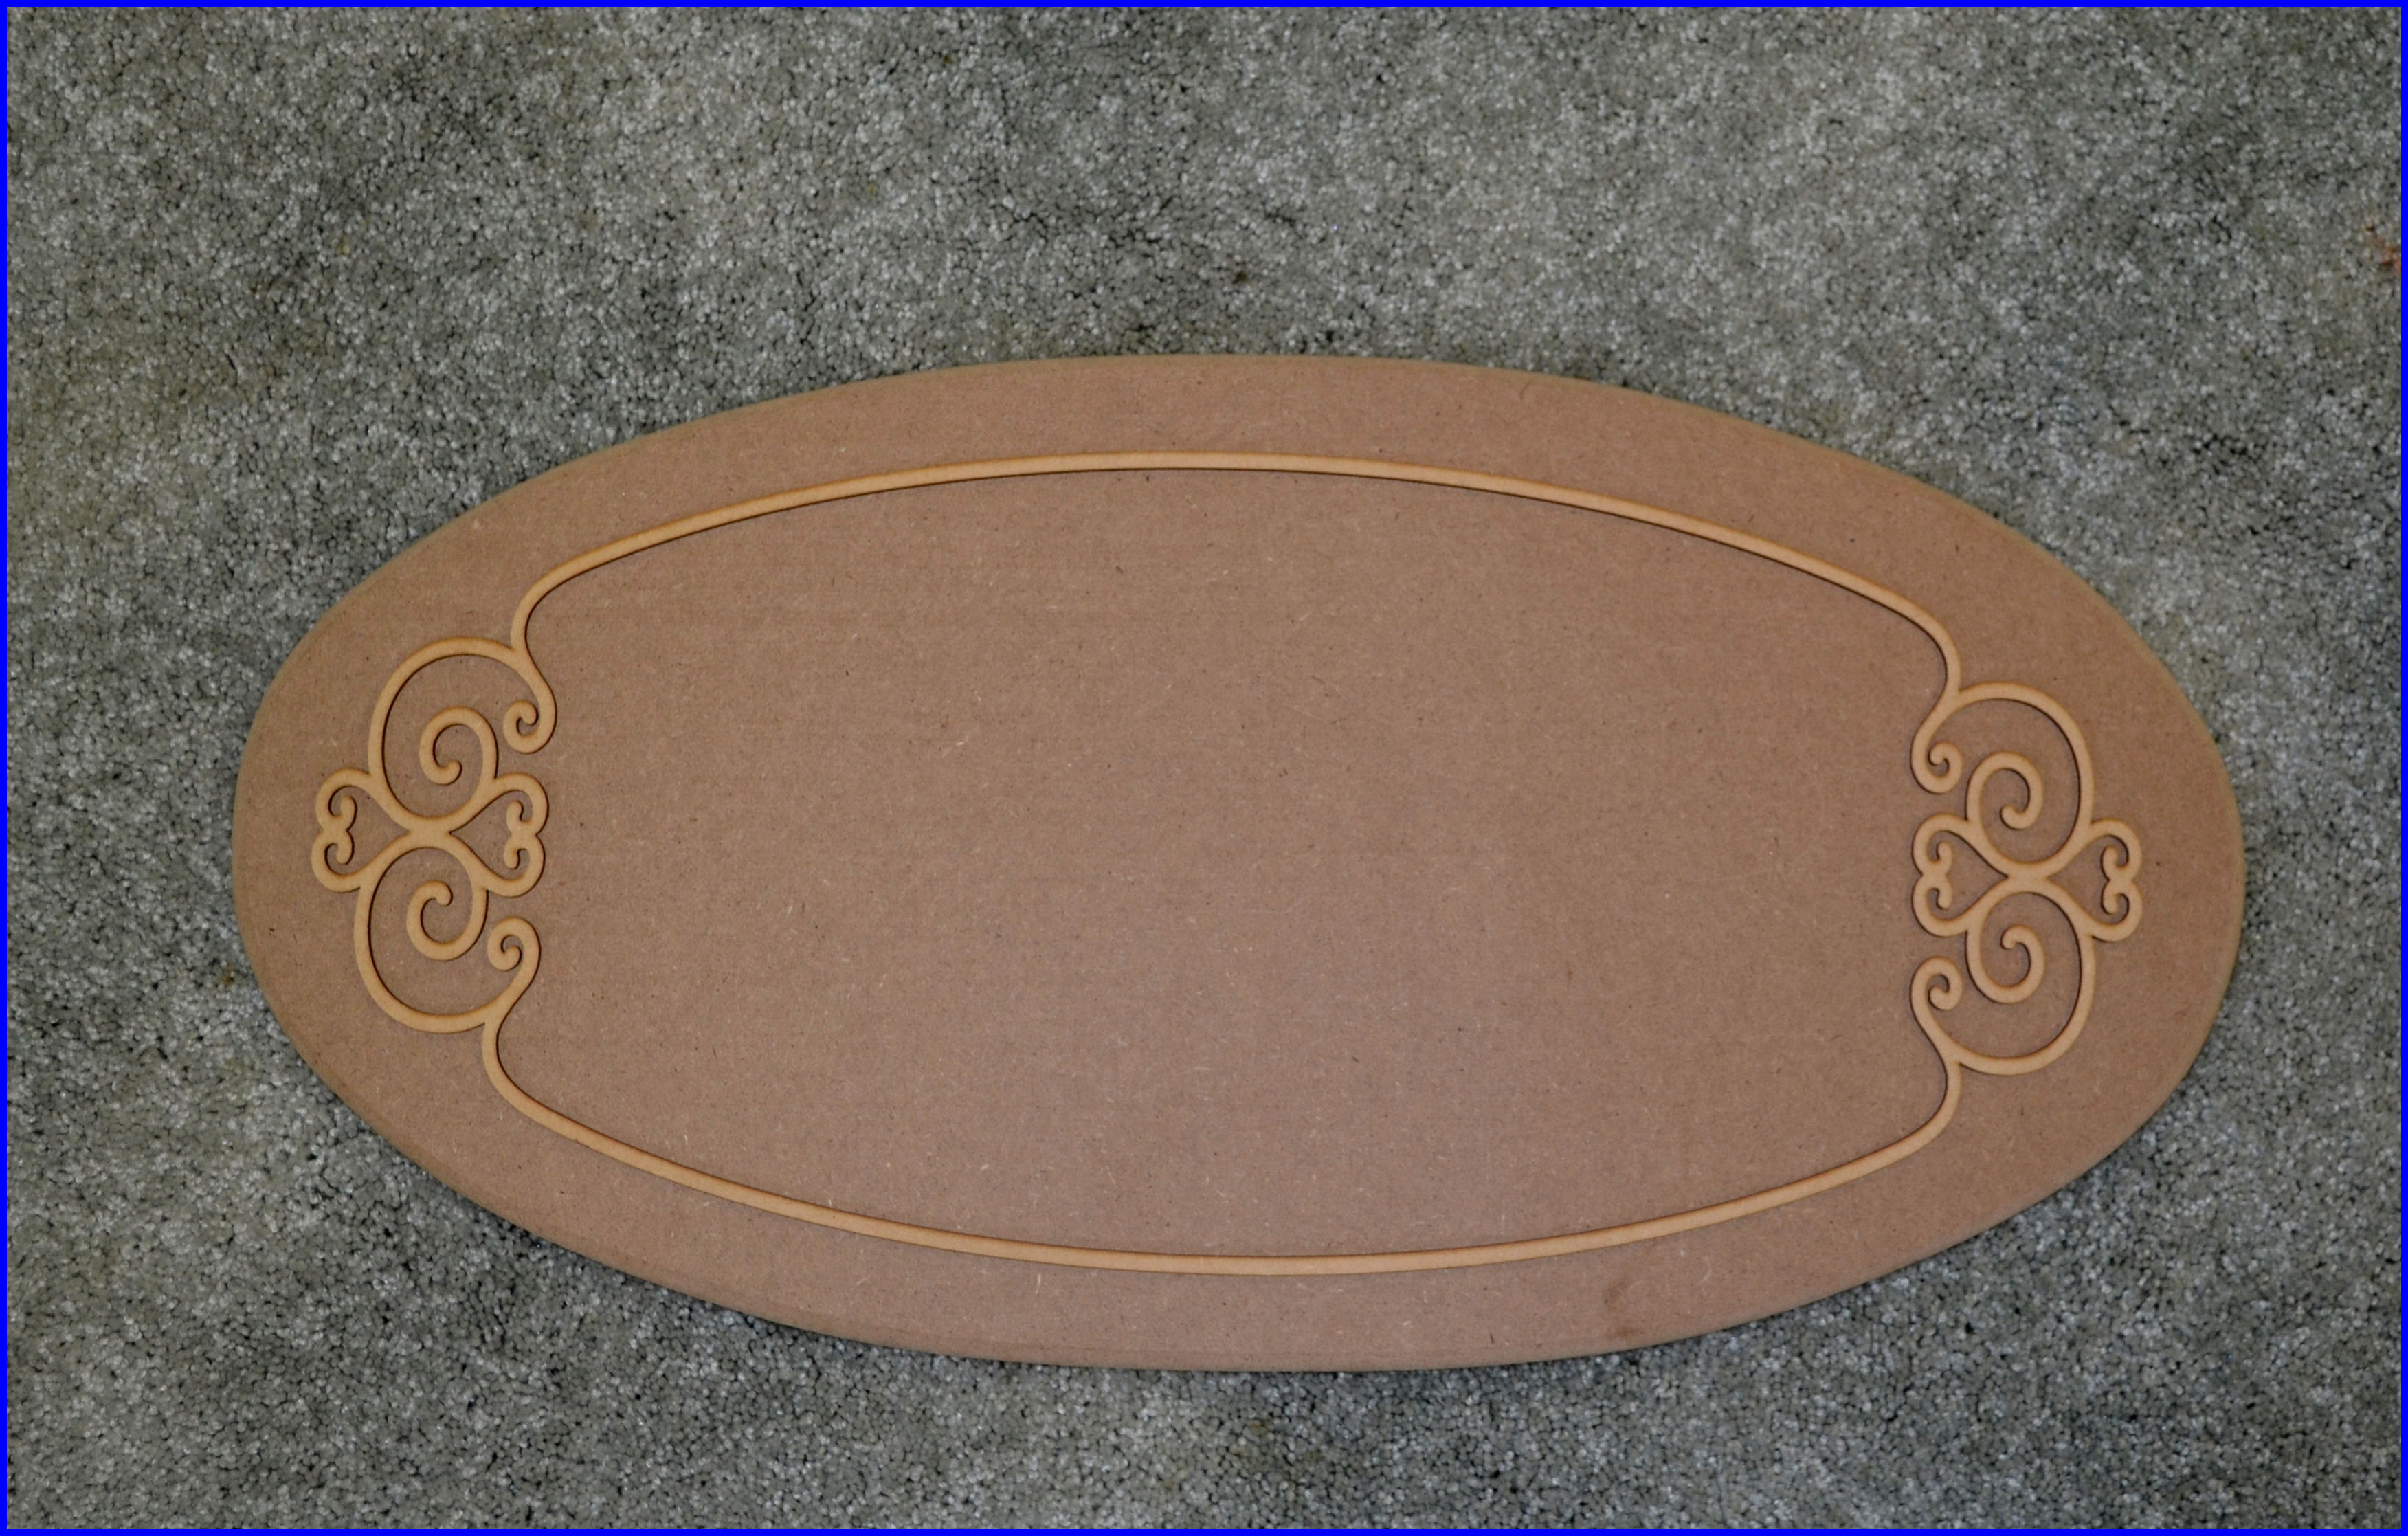 wood-long-wooden-oval-with-frame-19231009-.jpg